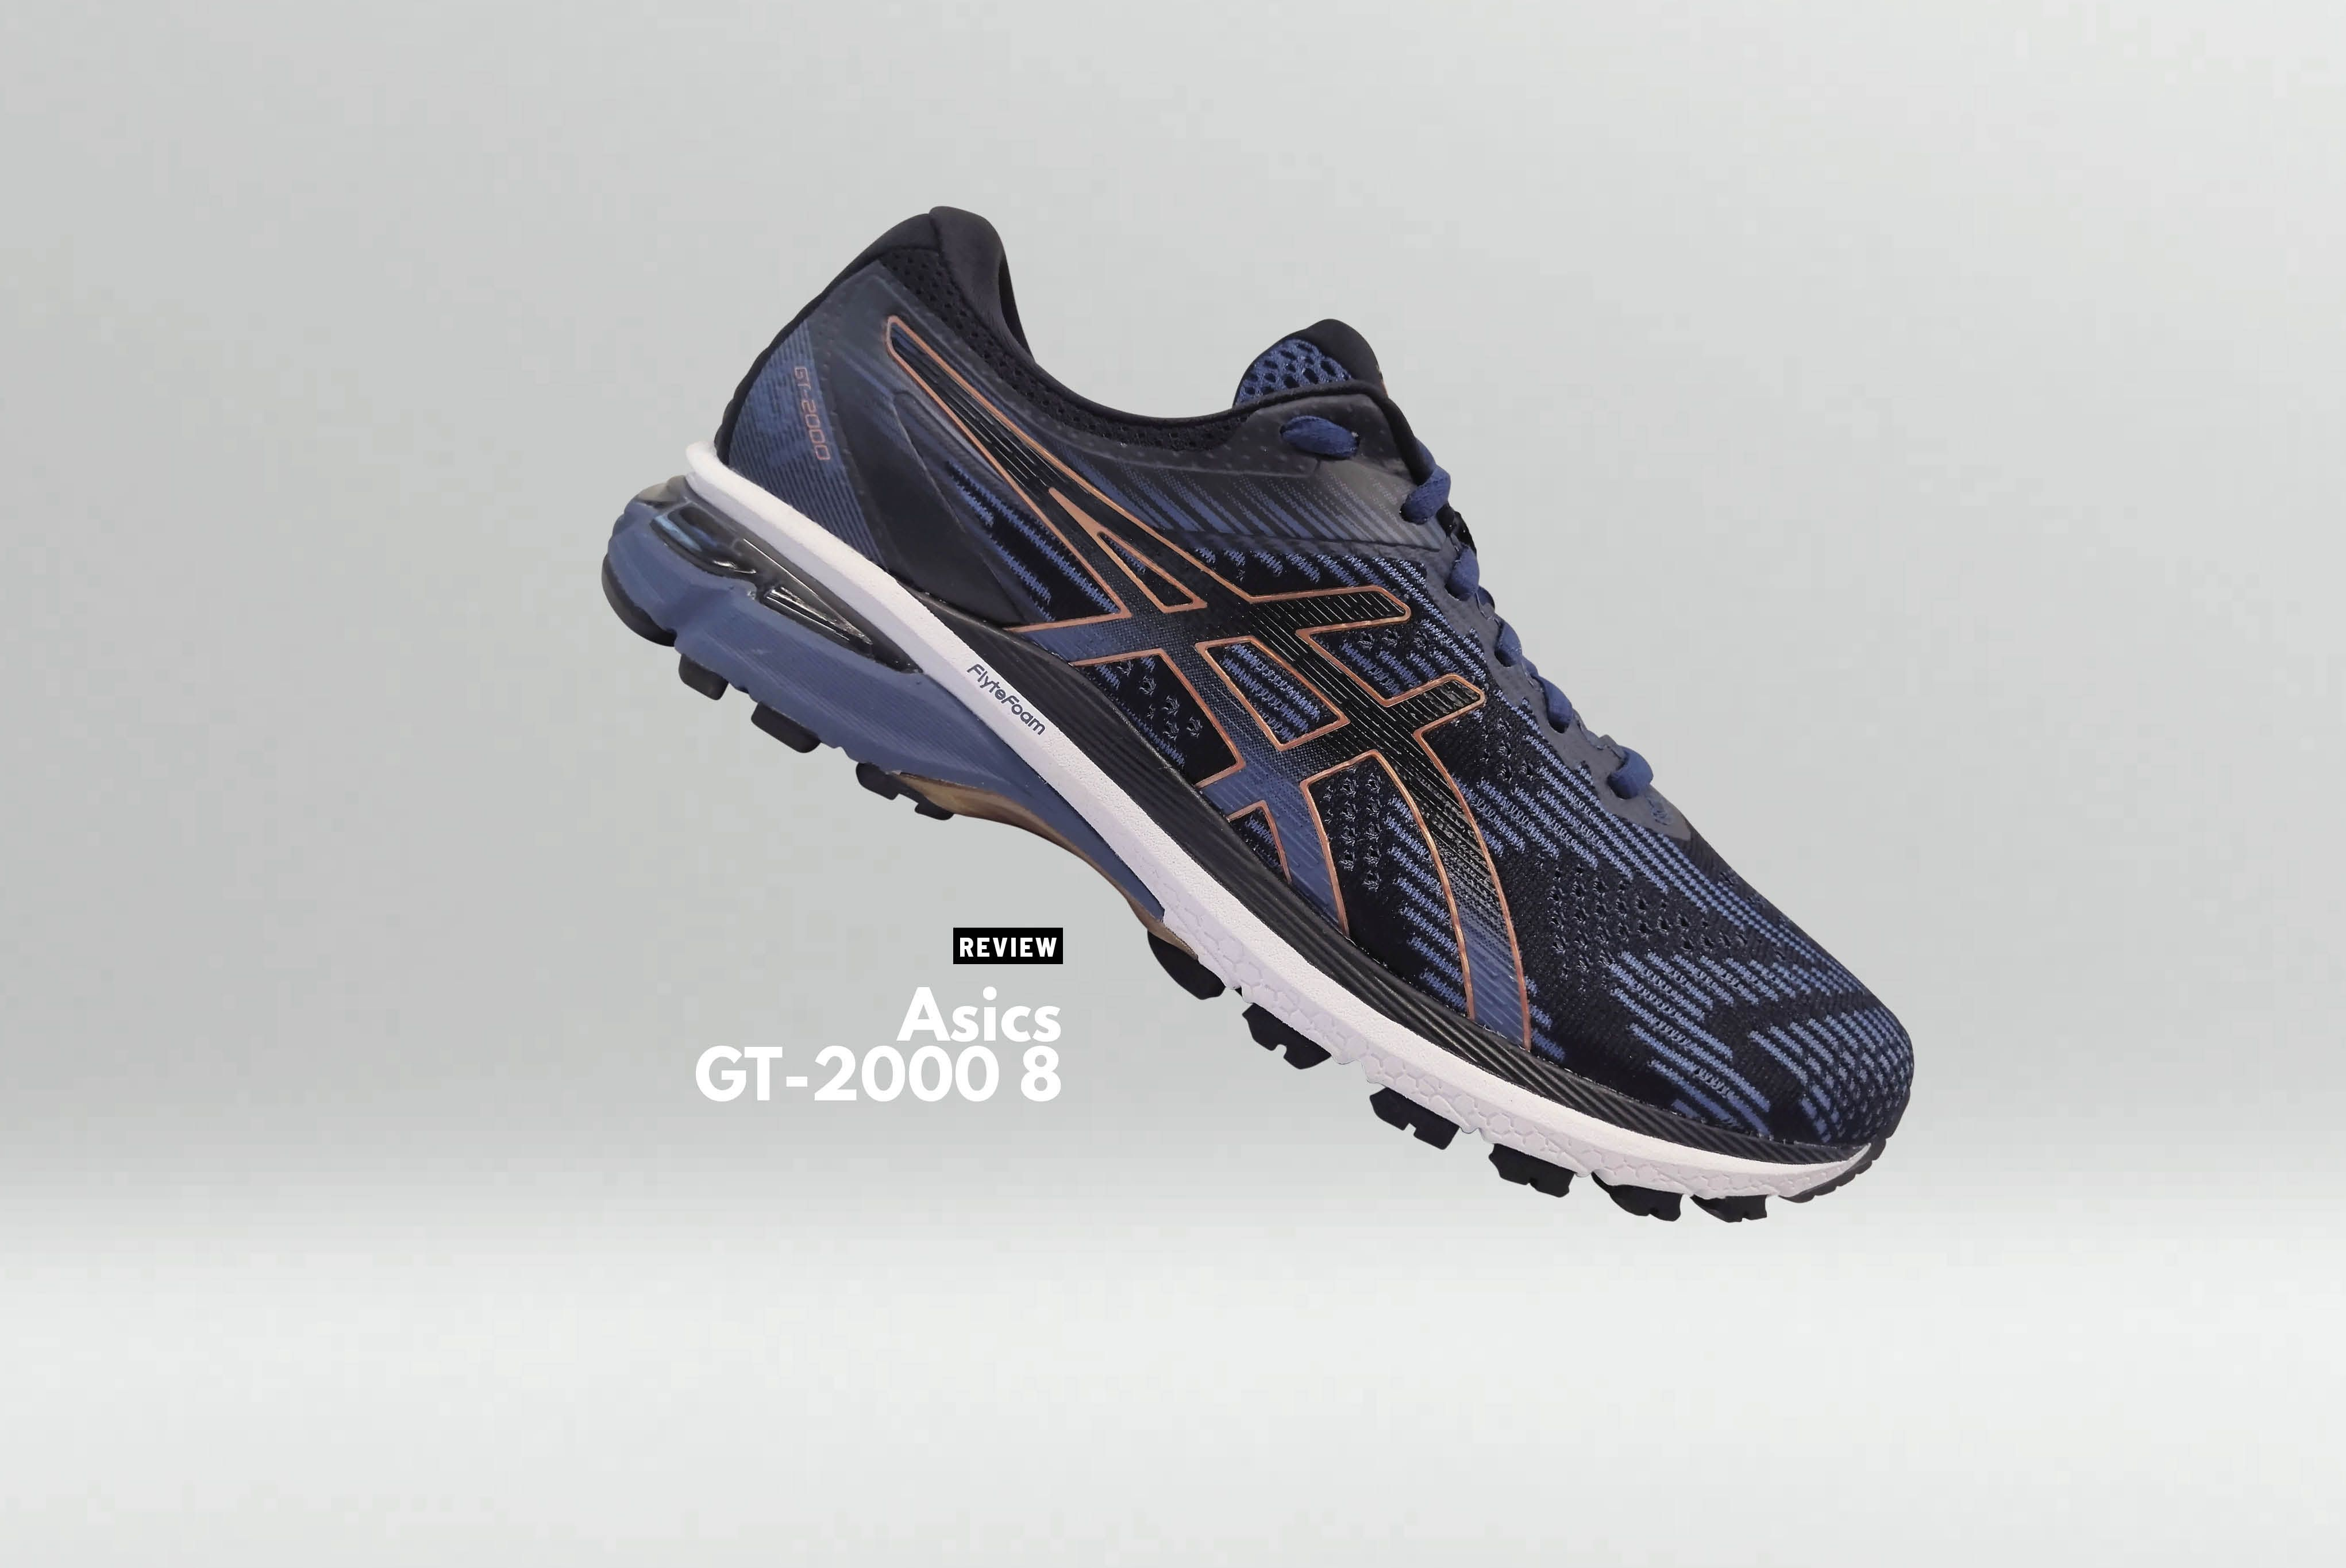 Review: Asics GT-2000 8